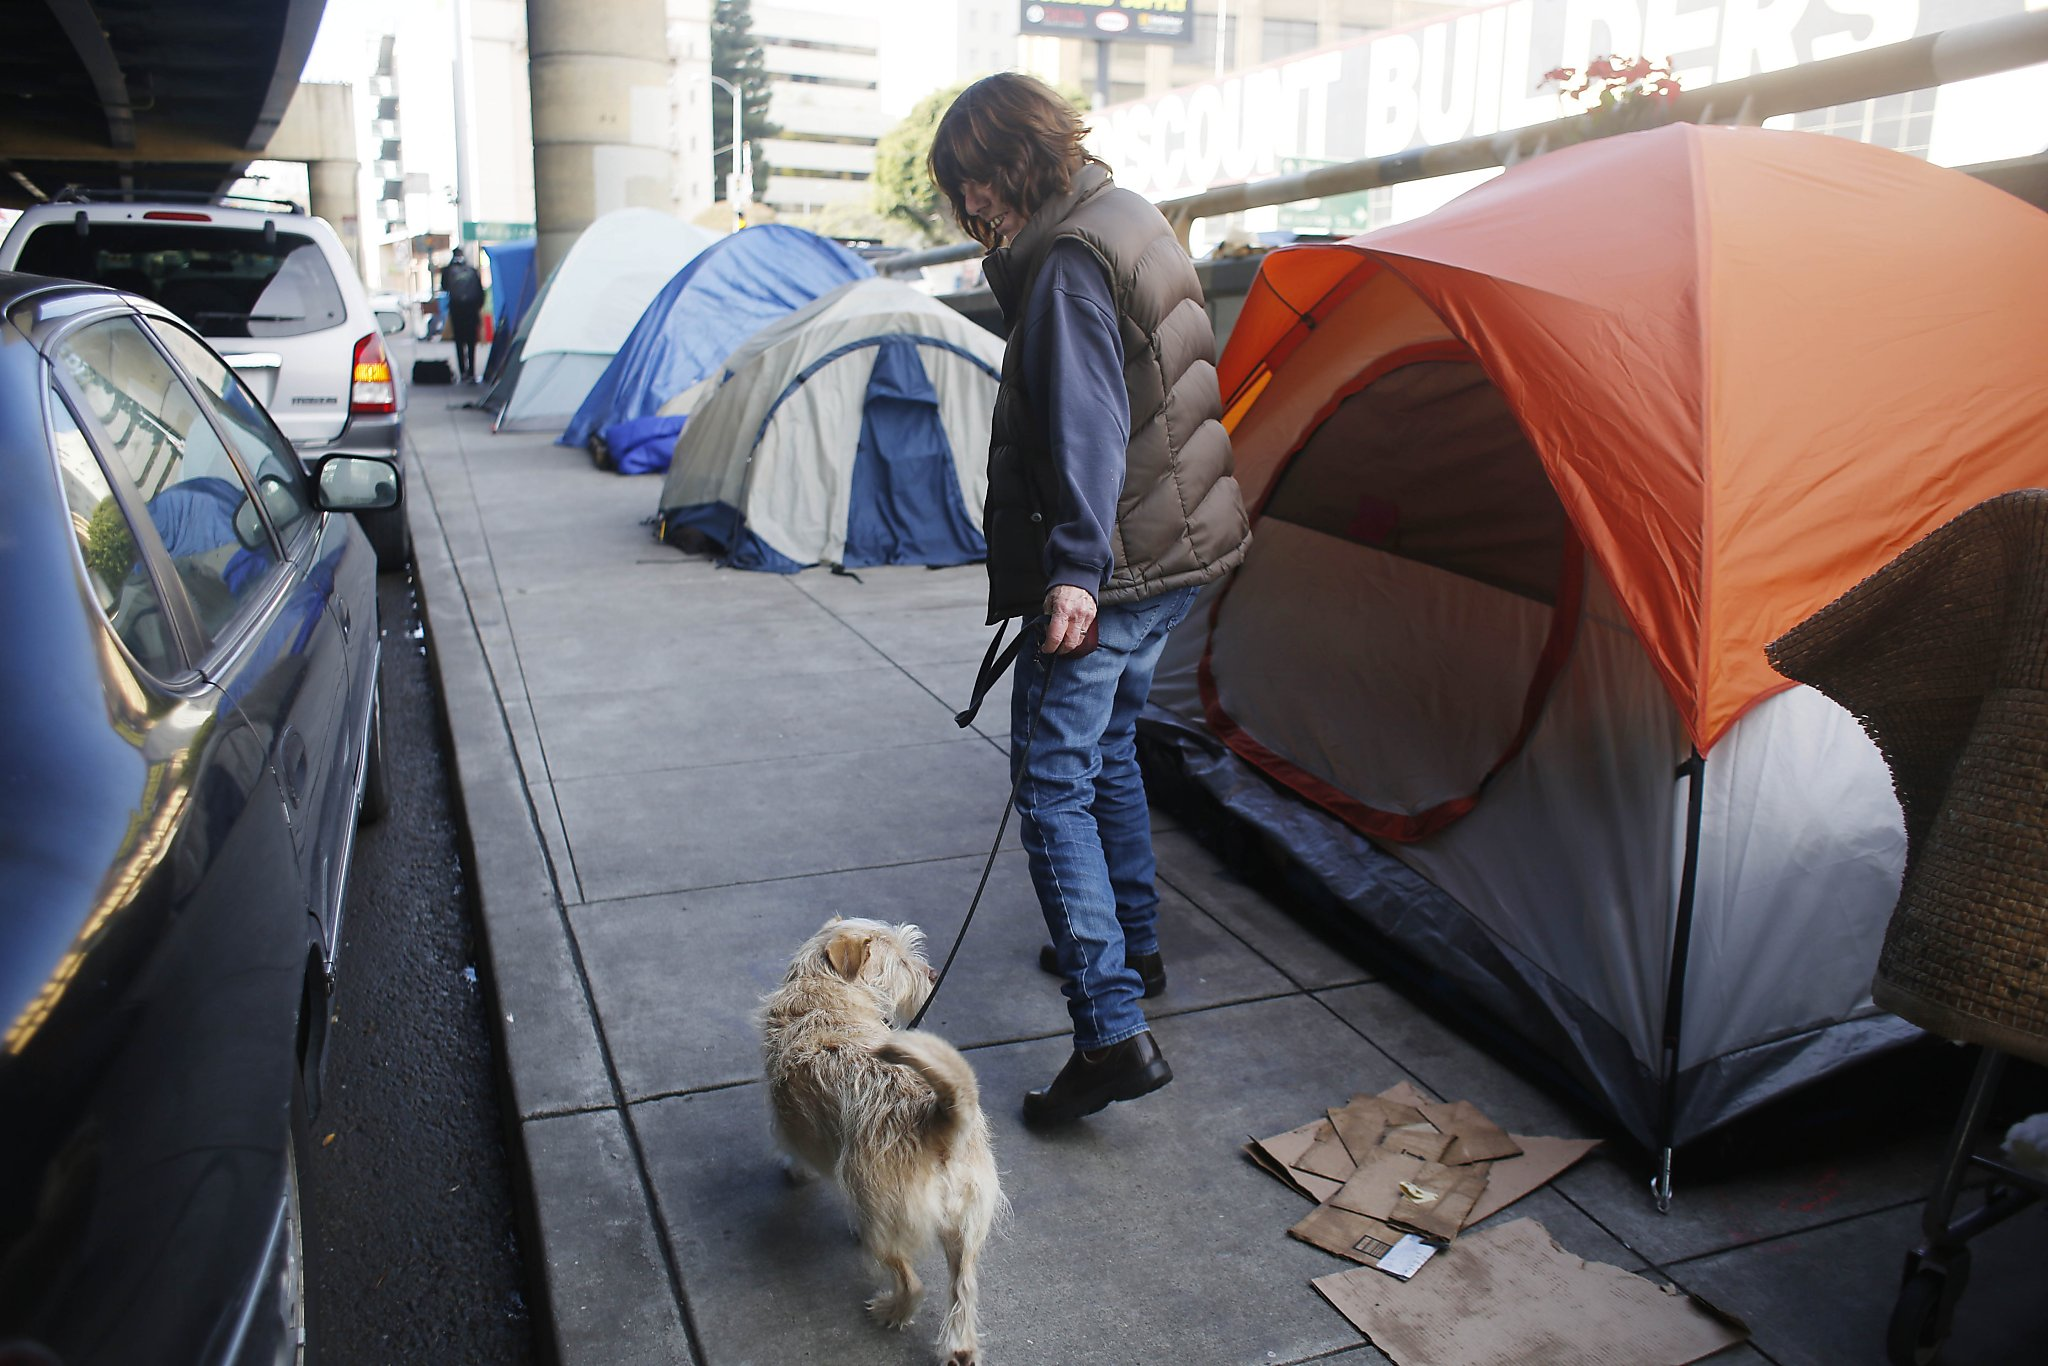 buying tents for sfu0027s homeless isnu0027t helping them san francisco chronicle